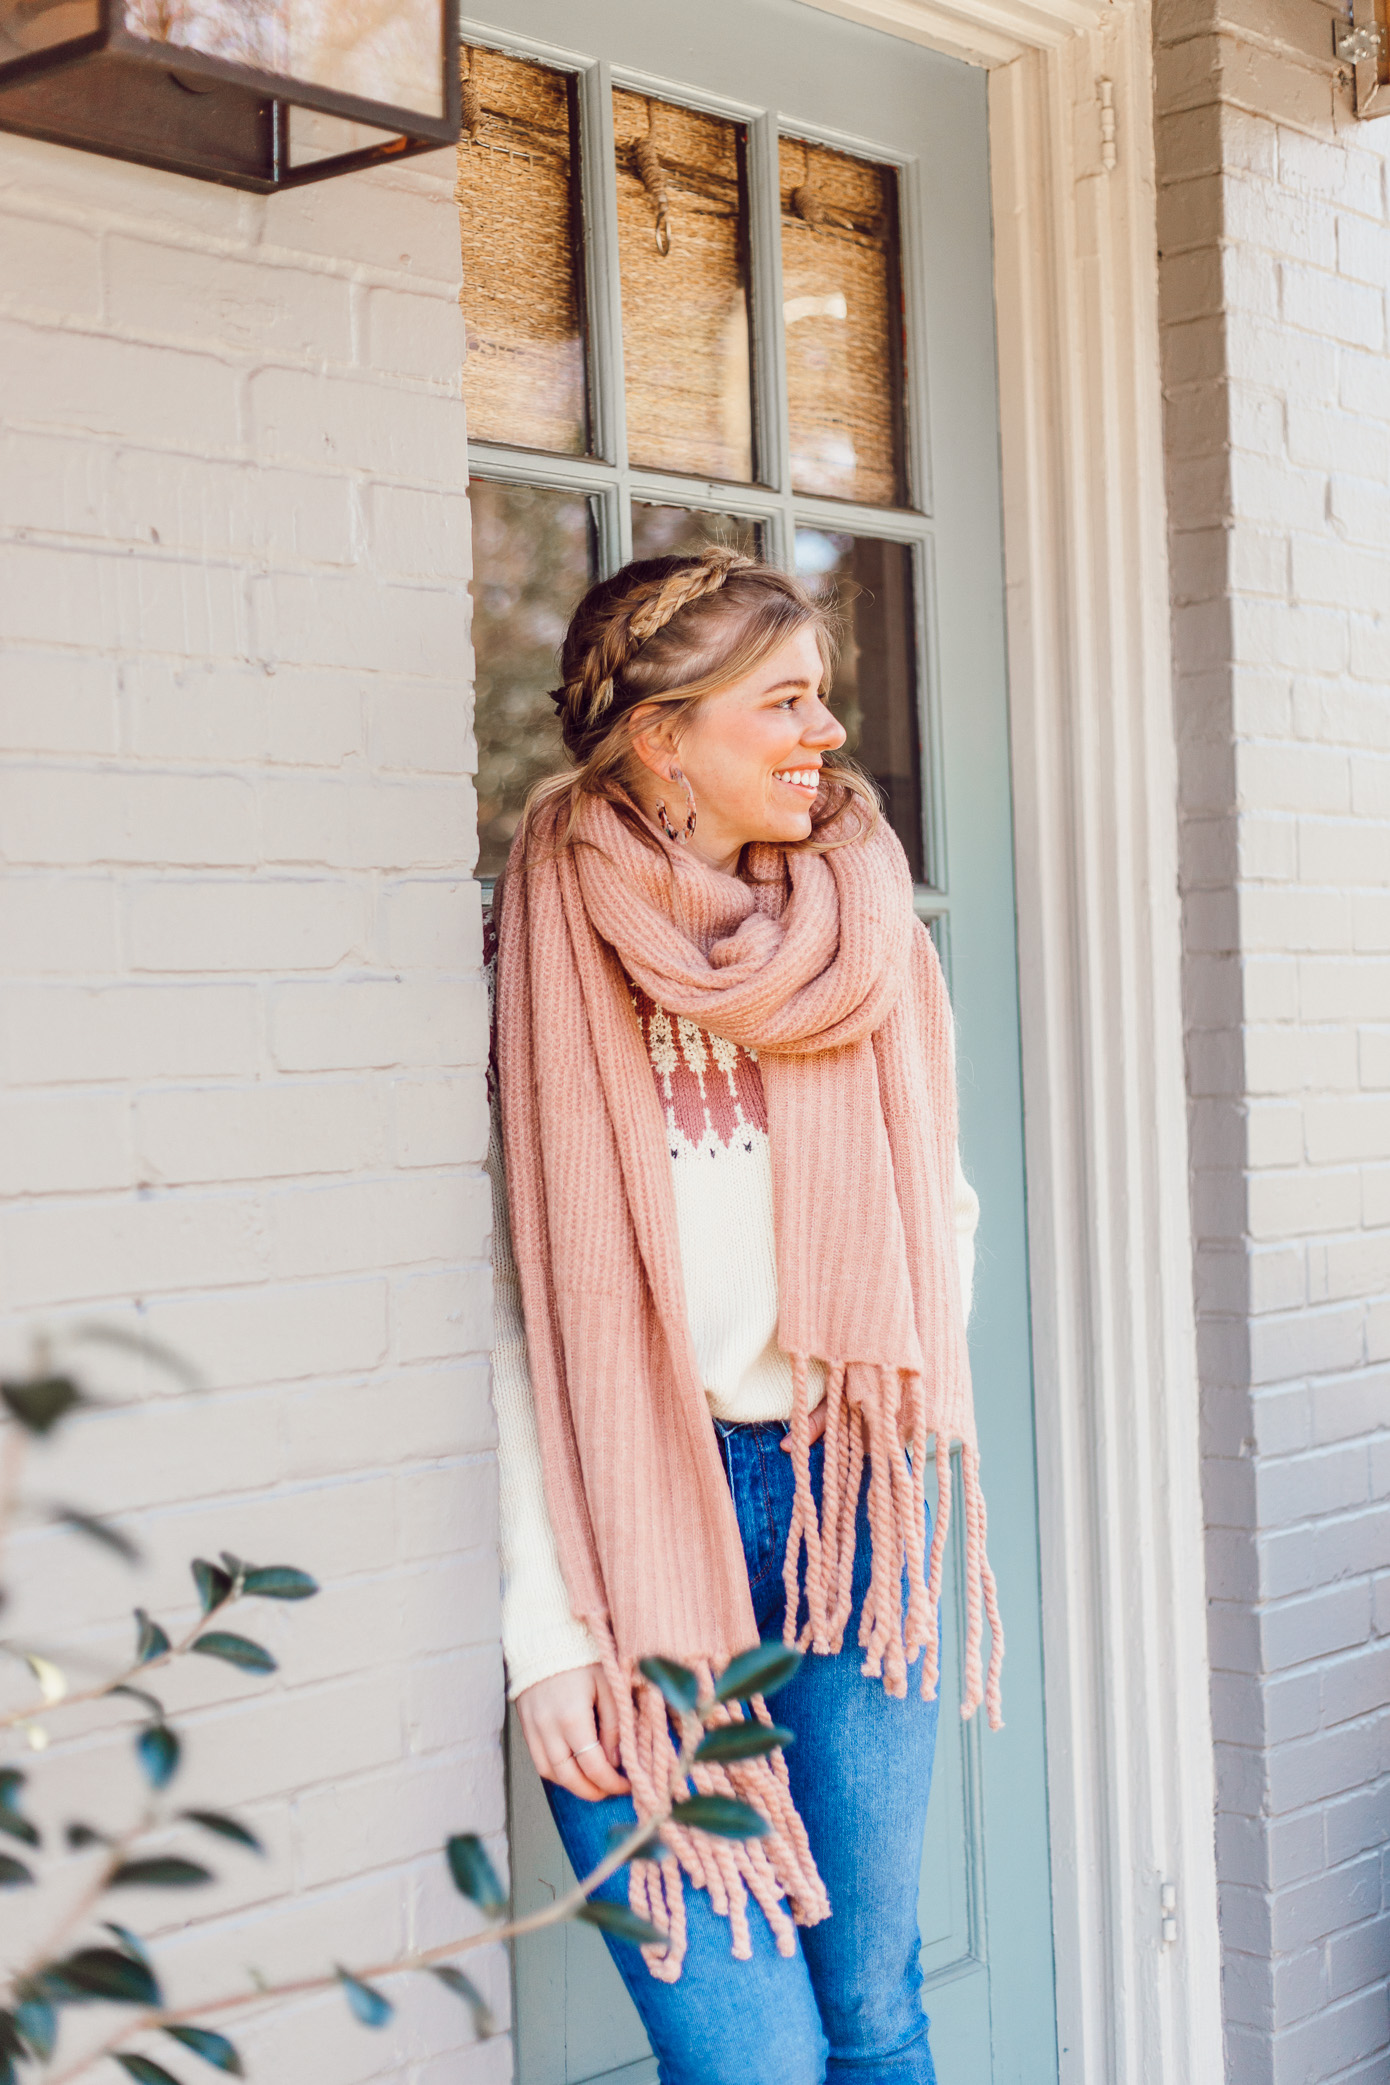 Blush Pink Oversized Scarf, Madewell Keaton Fair Isle Sweater | 10 Things I Want to Make Happen In 2019, 2019 Goals | Louella Reese